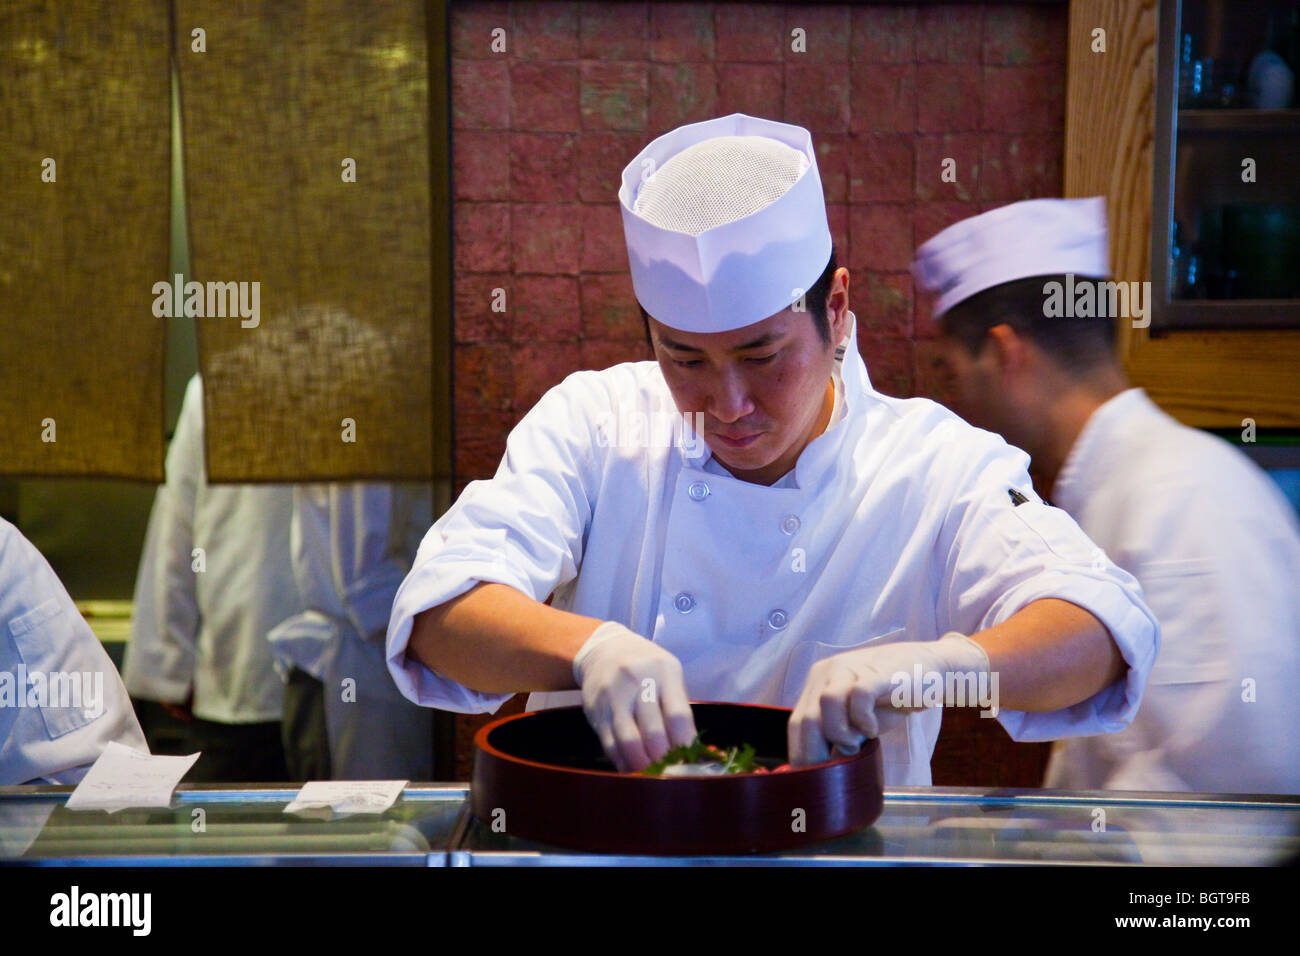 Sushi-Koch im Nobu Restaurant in Tribeca in New York City Stockbild